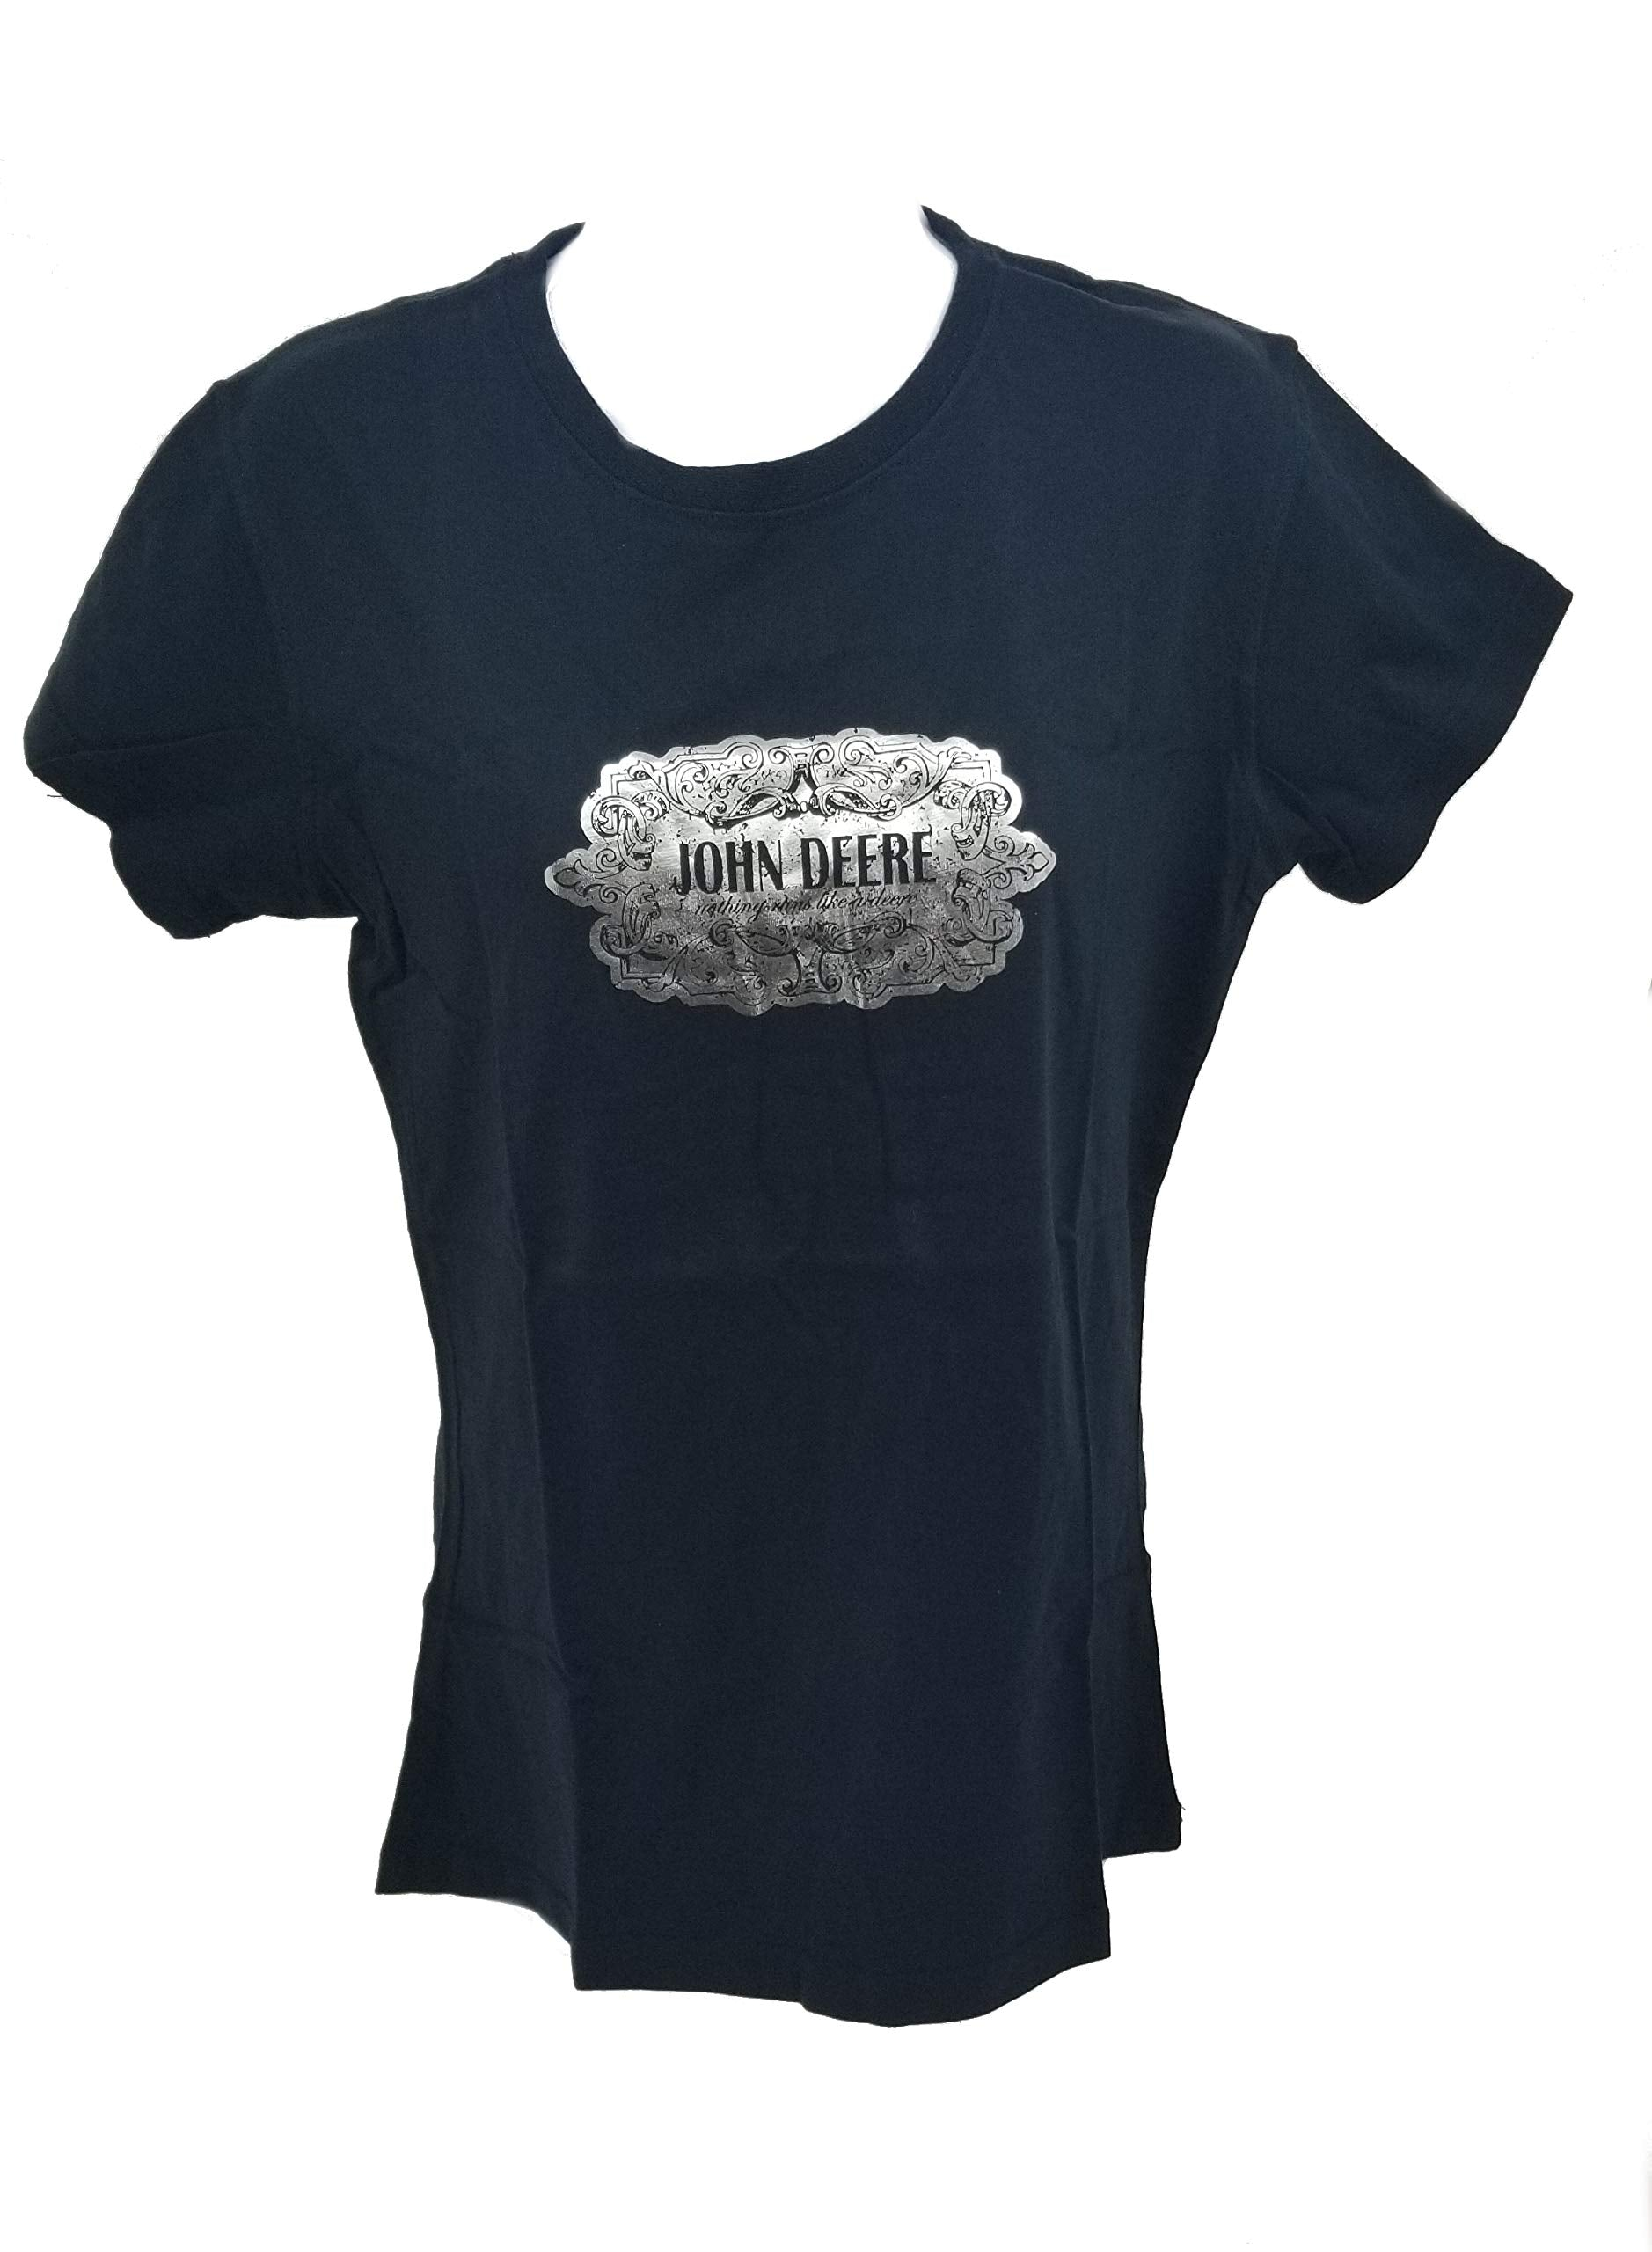 Ladies John Deere Black with Silver Foil T-Shirt (Medium) - 23005131